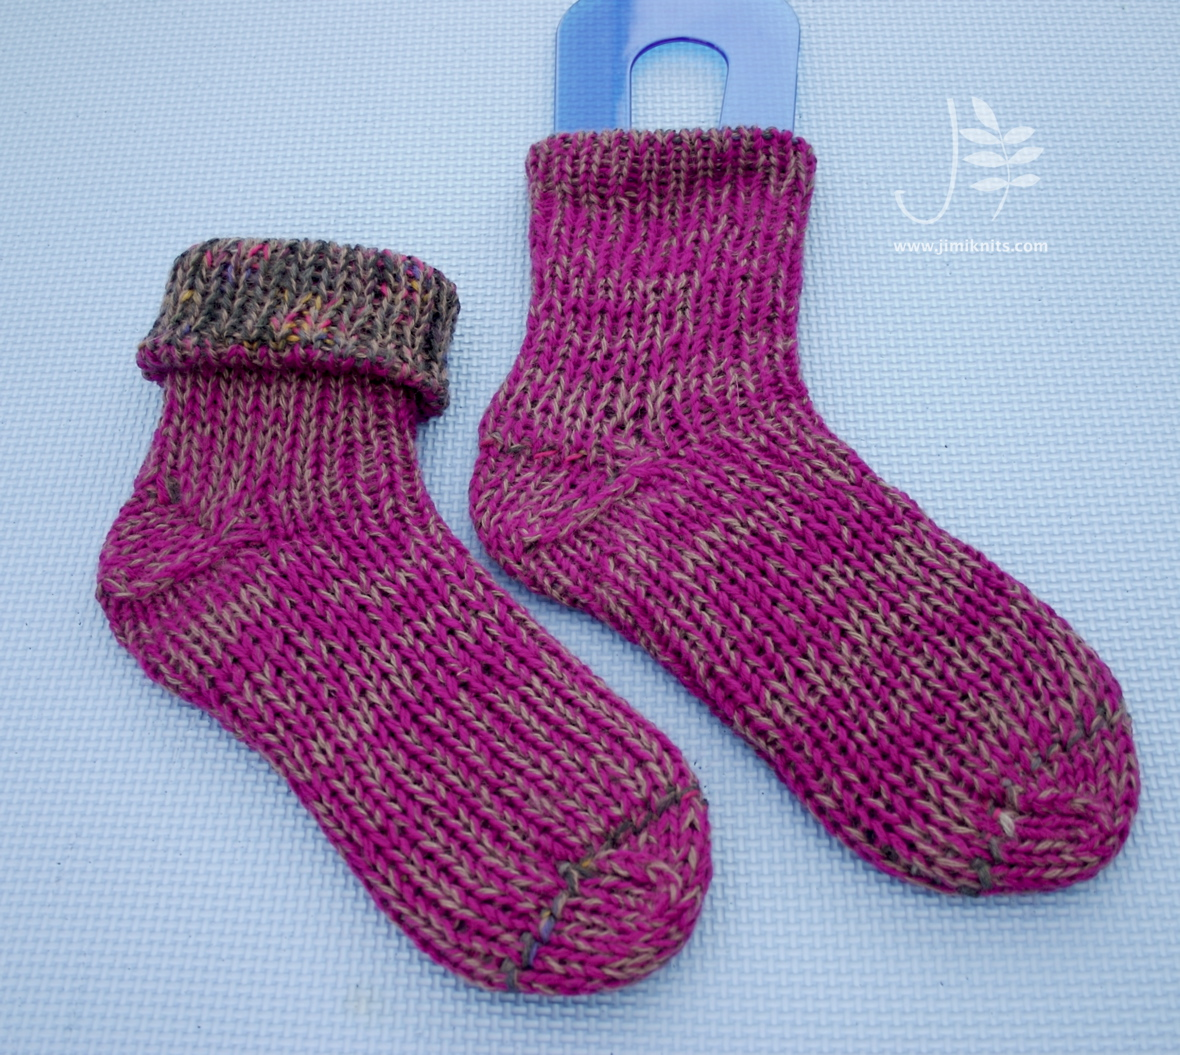 socks | JimiKnits… and other bits.